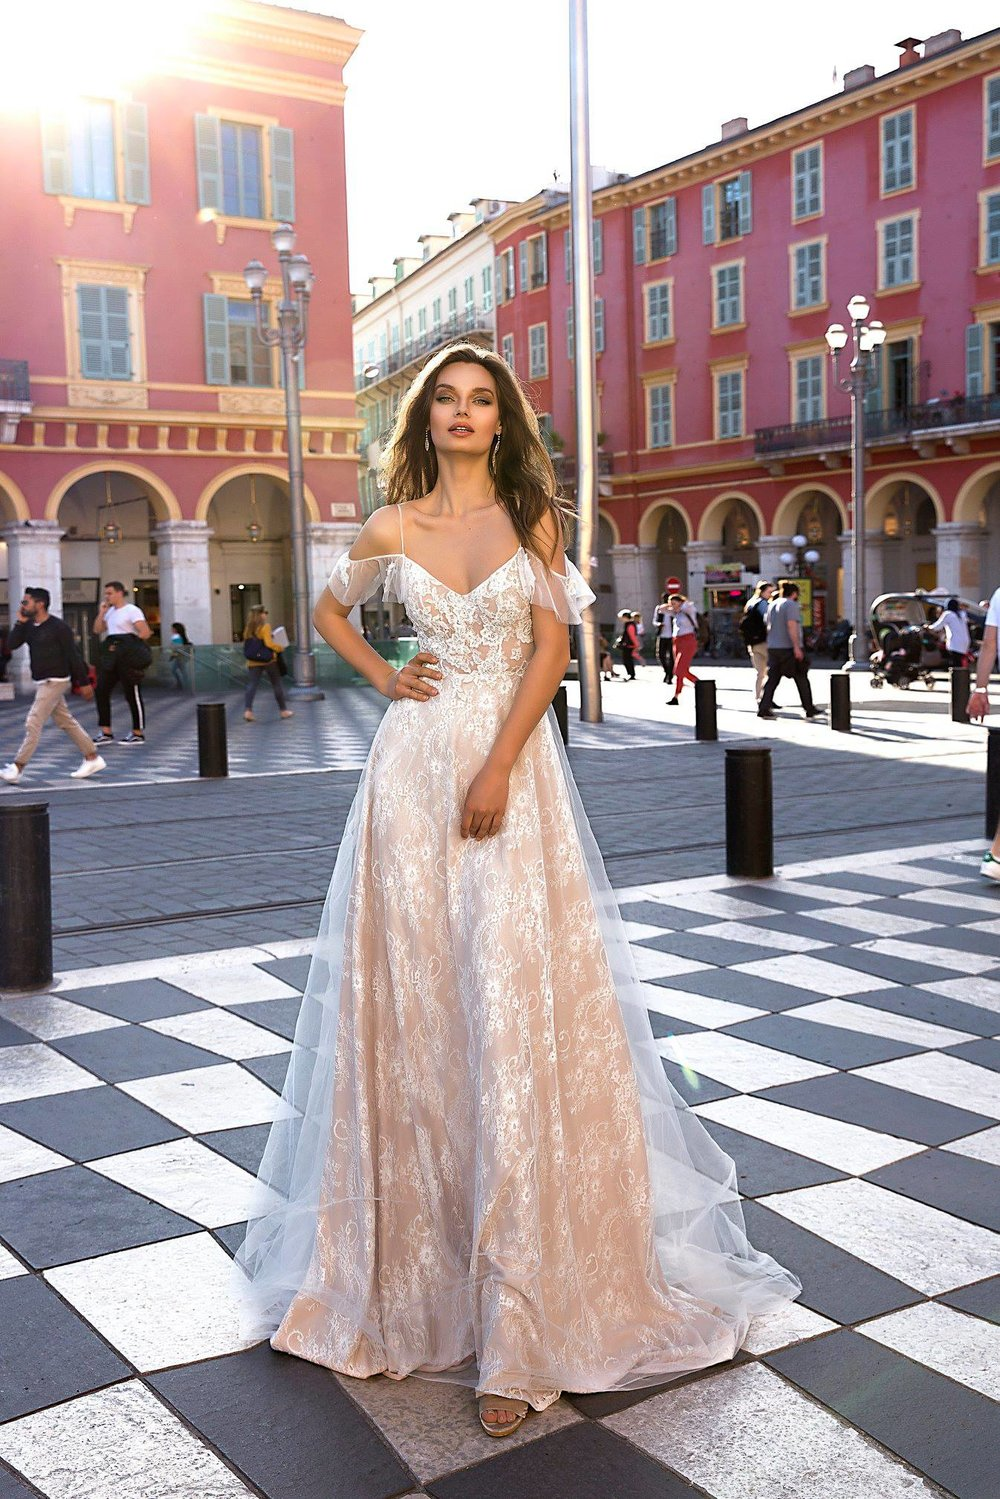 MIA wedding dress by TINA VALERDI